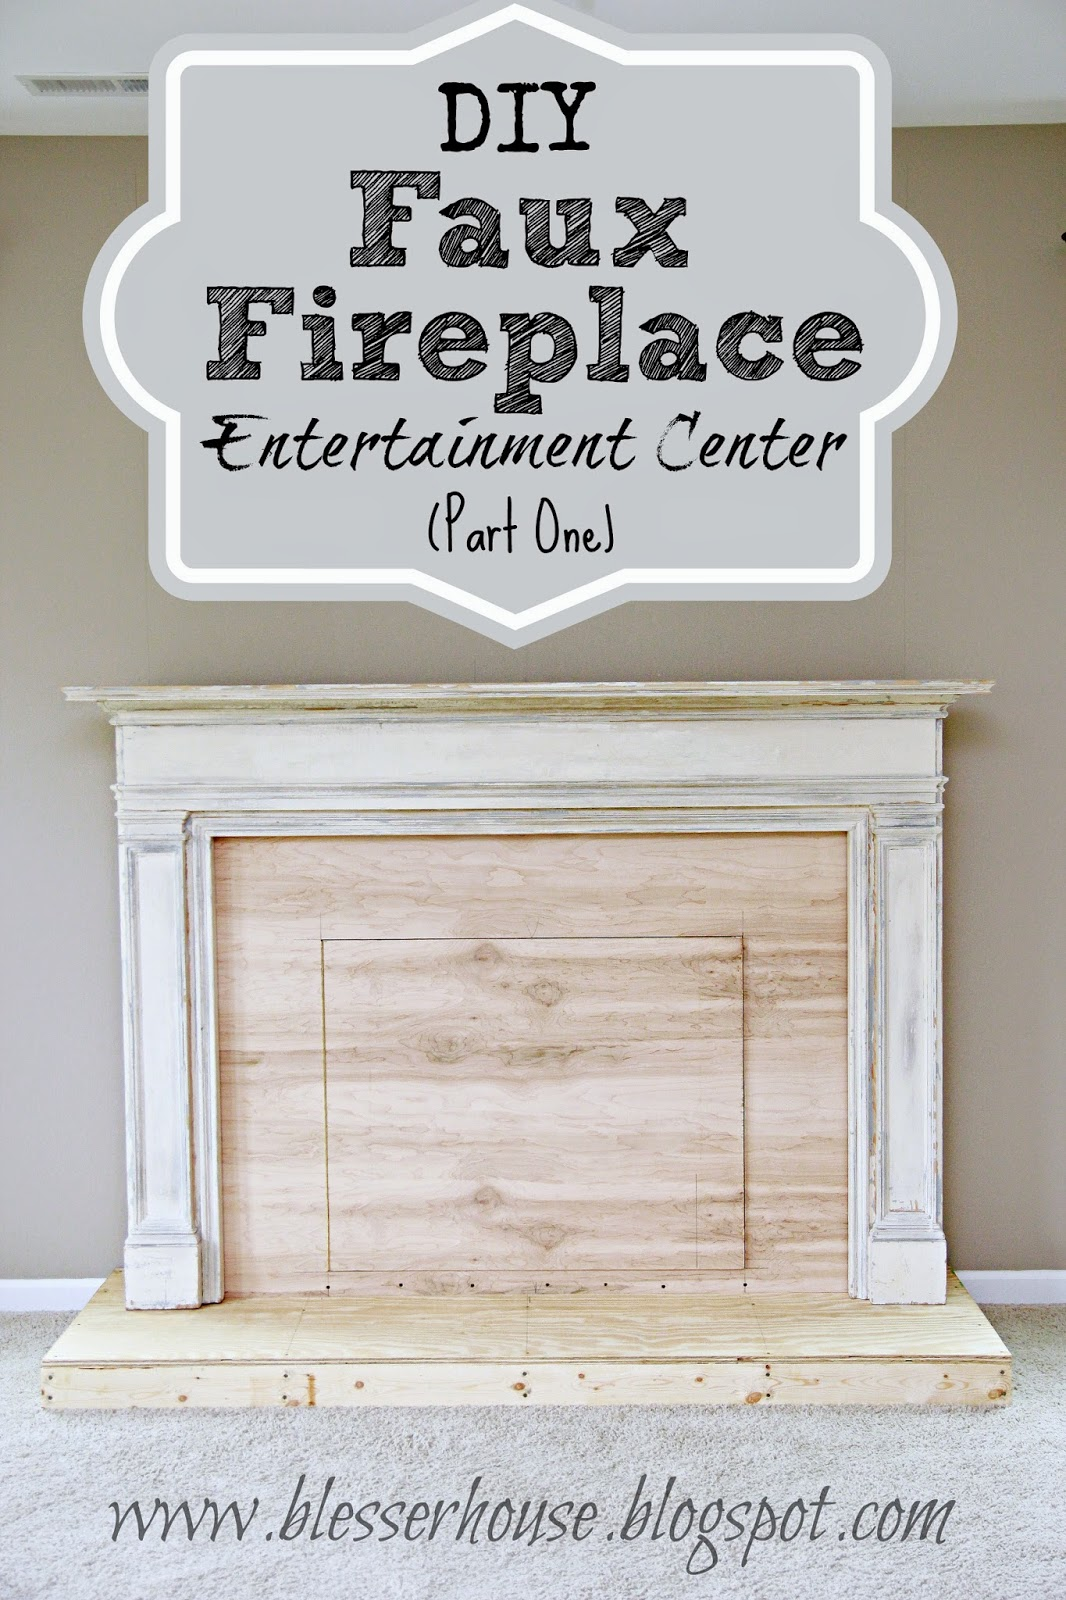 Diy faux fireplace entertainment center part one blesser house just last week we were living with this situation which i already whined to you about before solutioingenieria Gallery